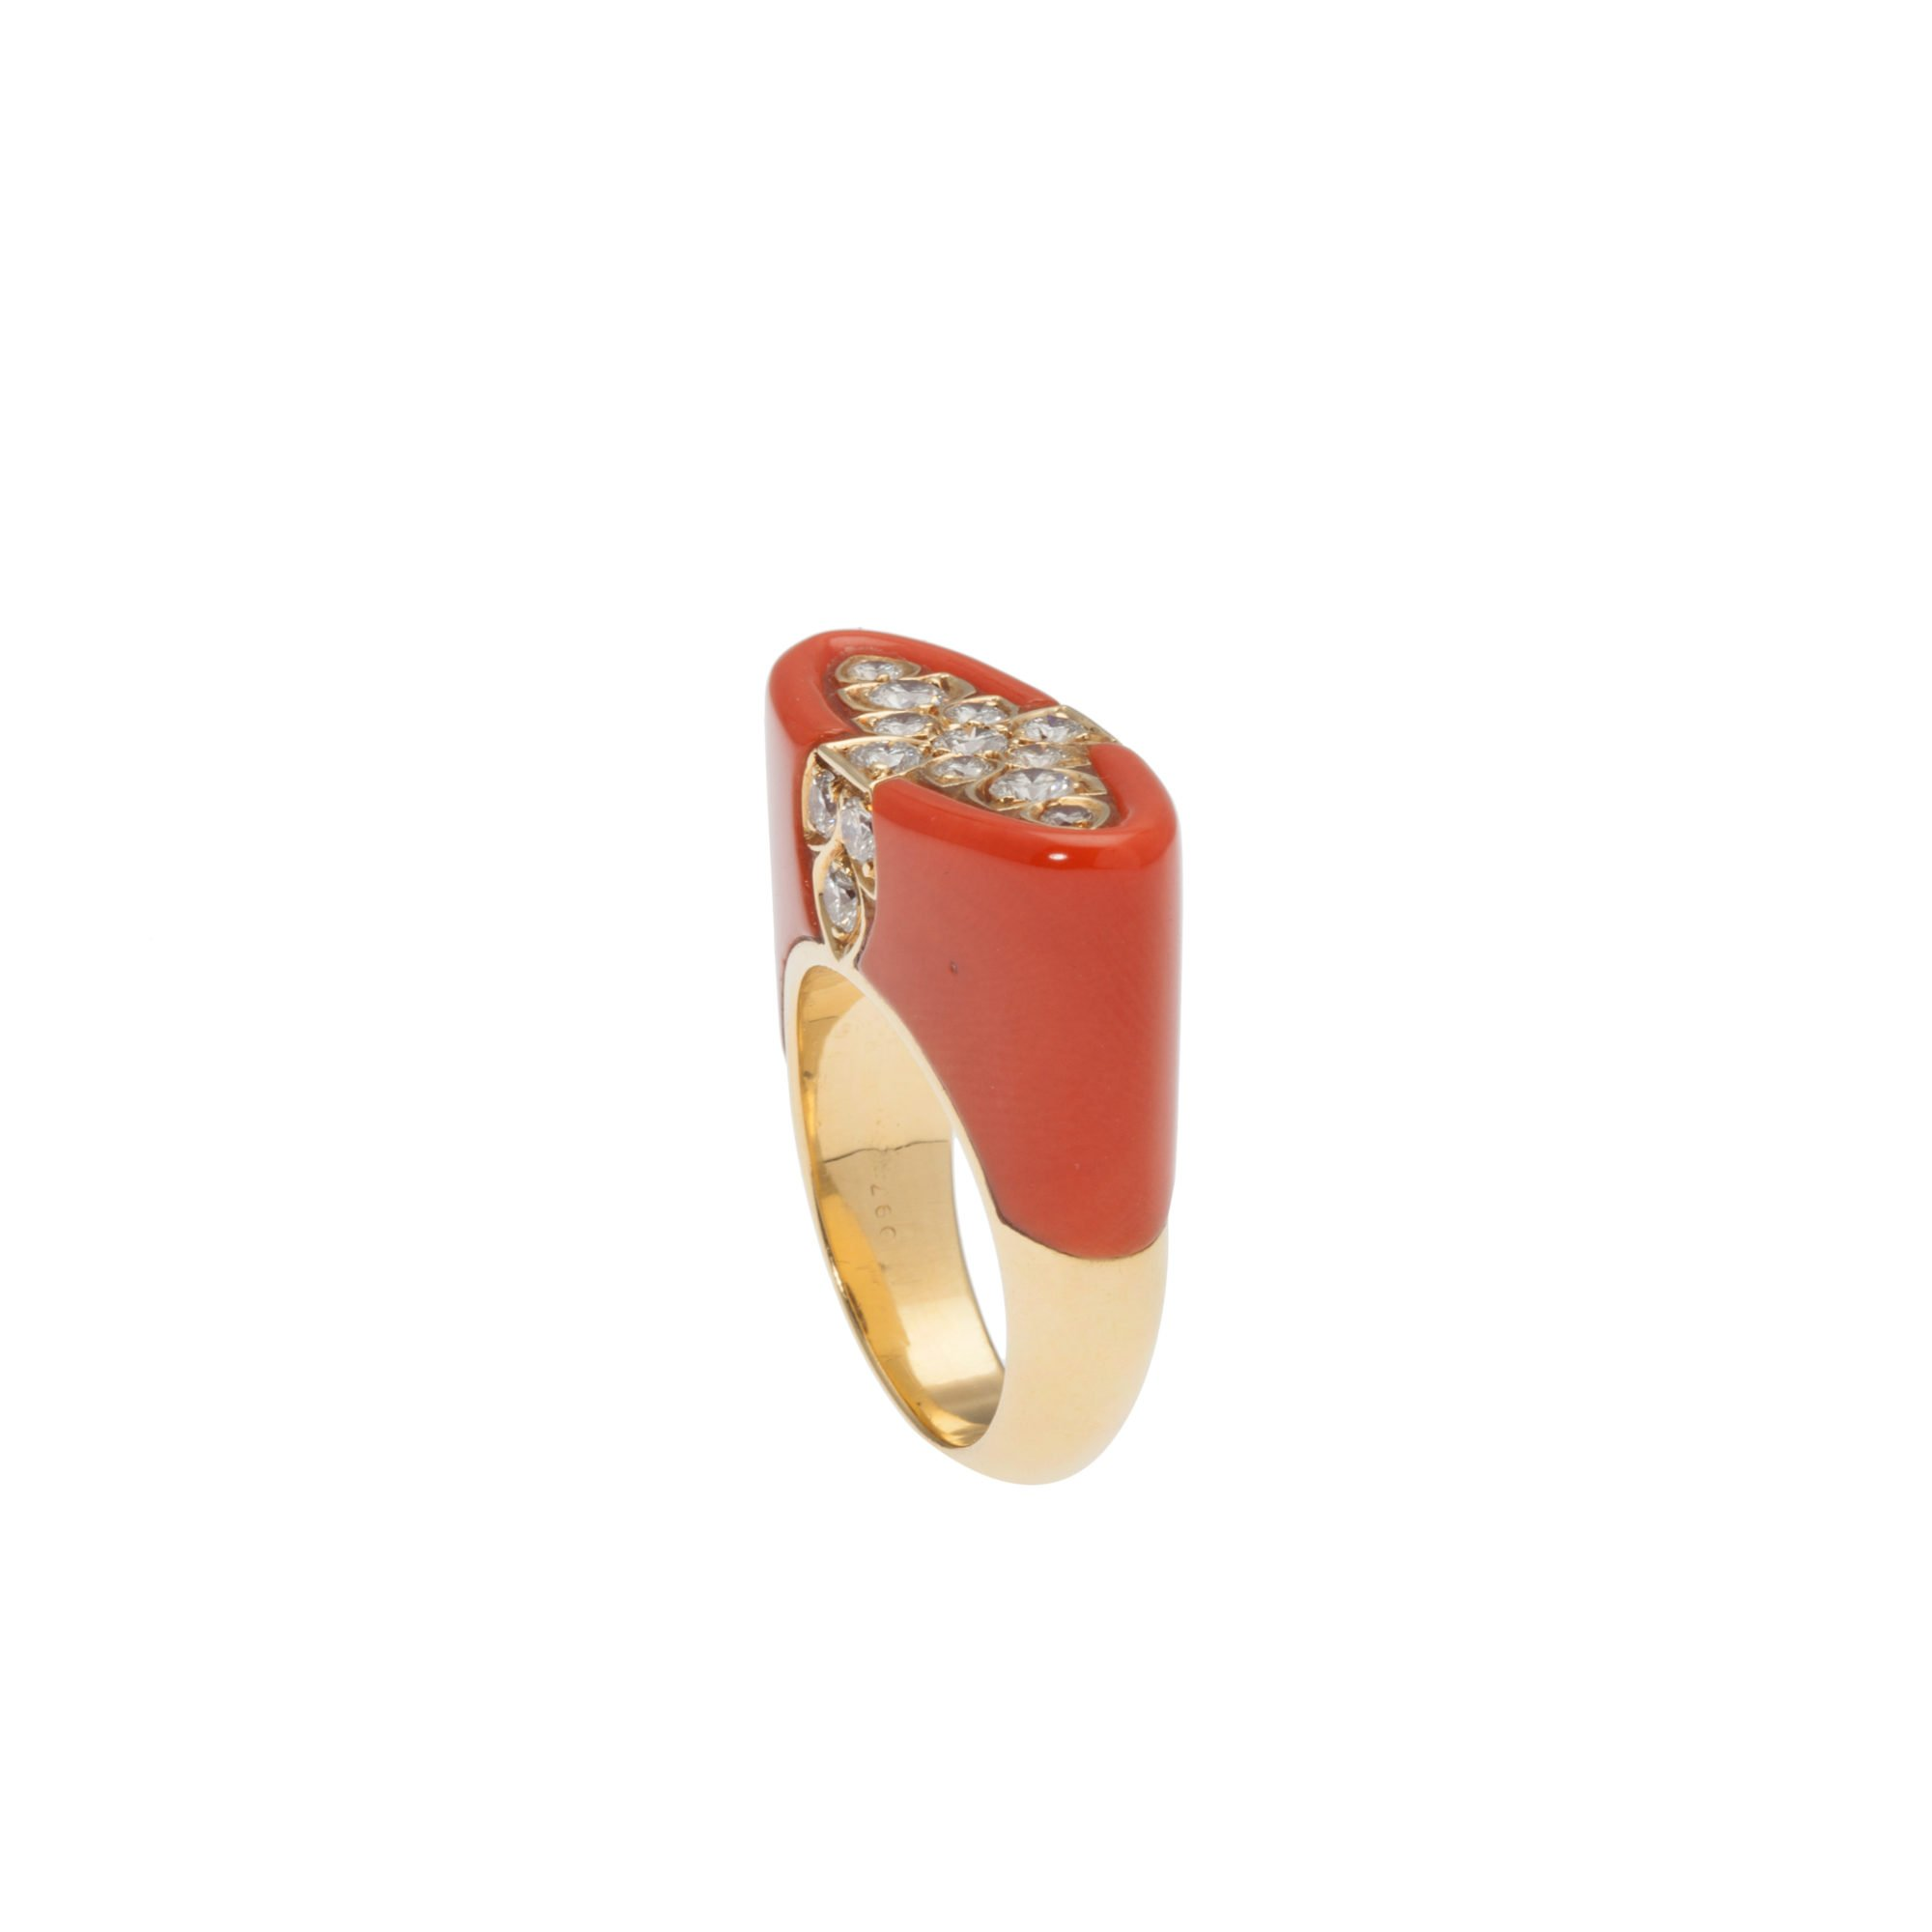 coral and free salmon sapphire cabochon rings overstock ring michael round bamboo orange product shipping watches today valitutti jewelry